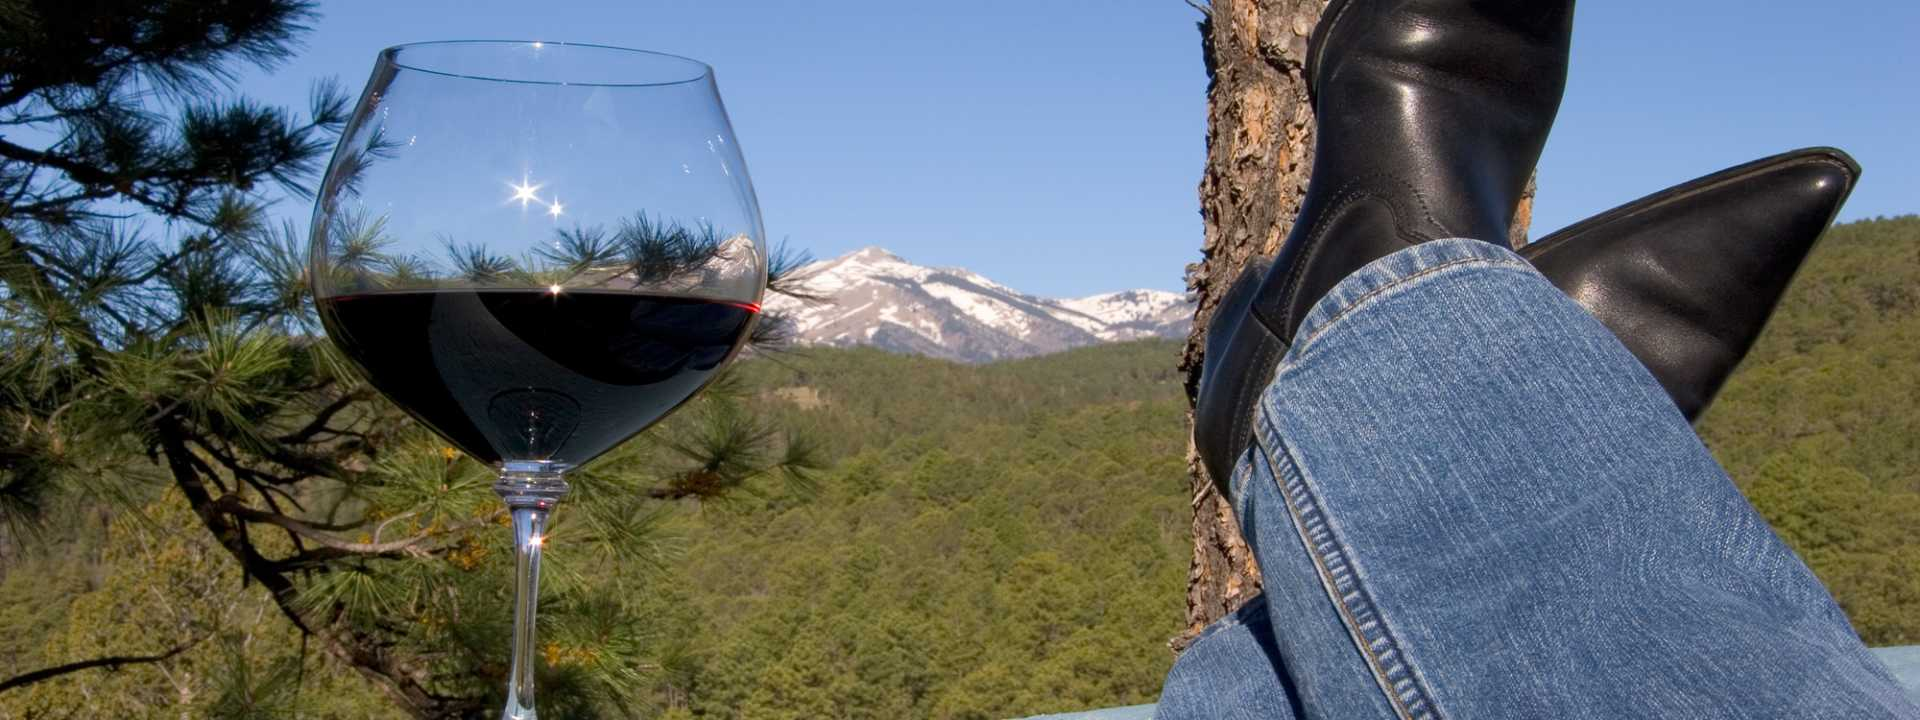 Relax with a view of the mountains and a glass of New Mexico Pinot Noir